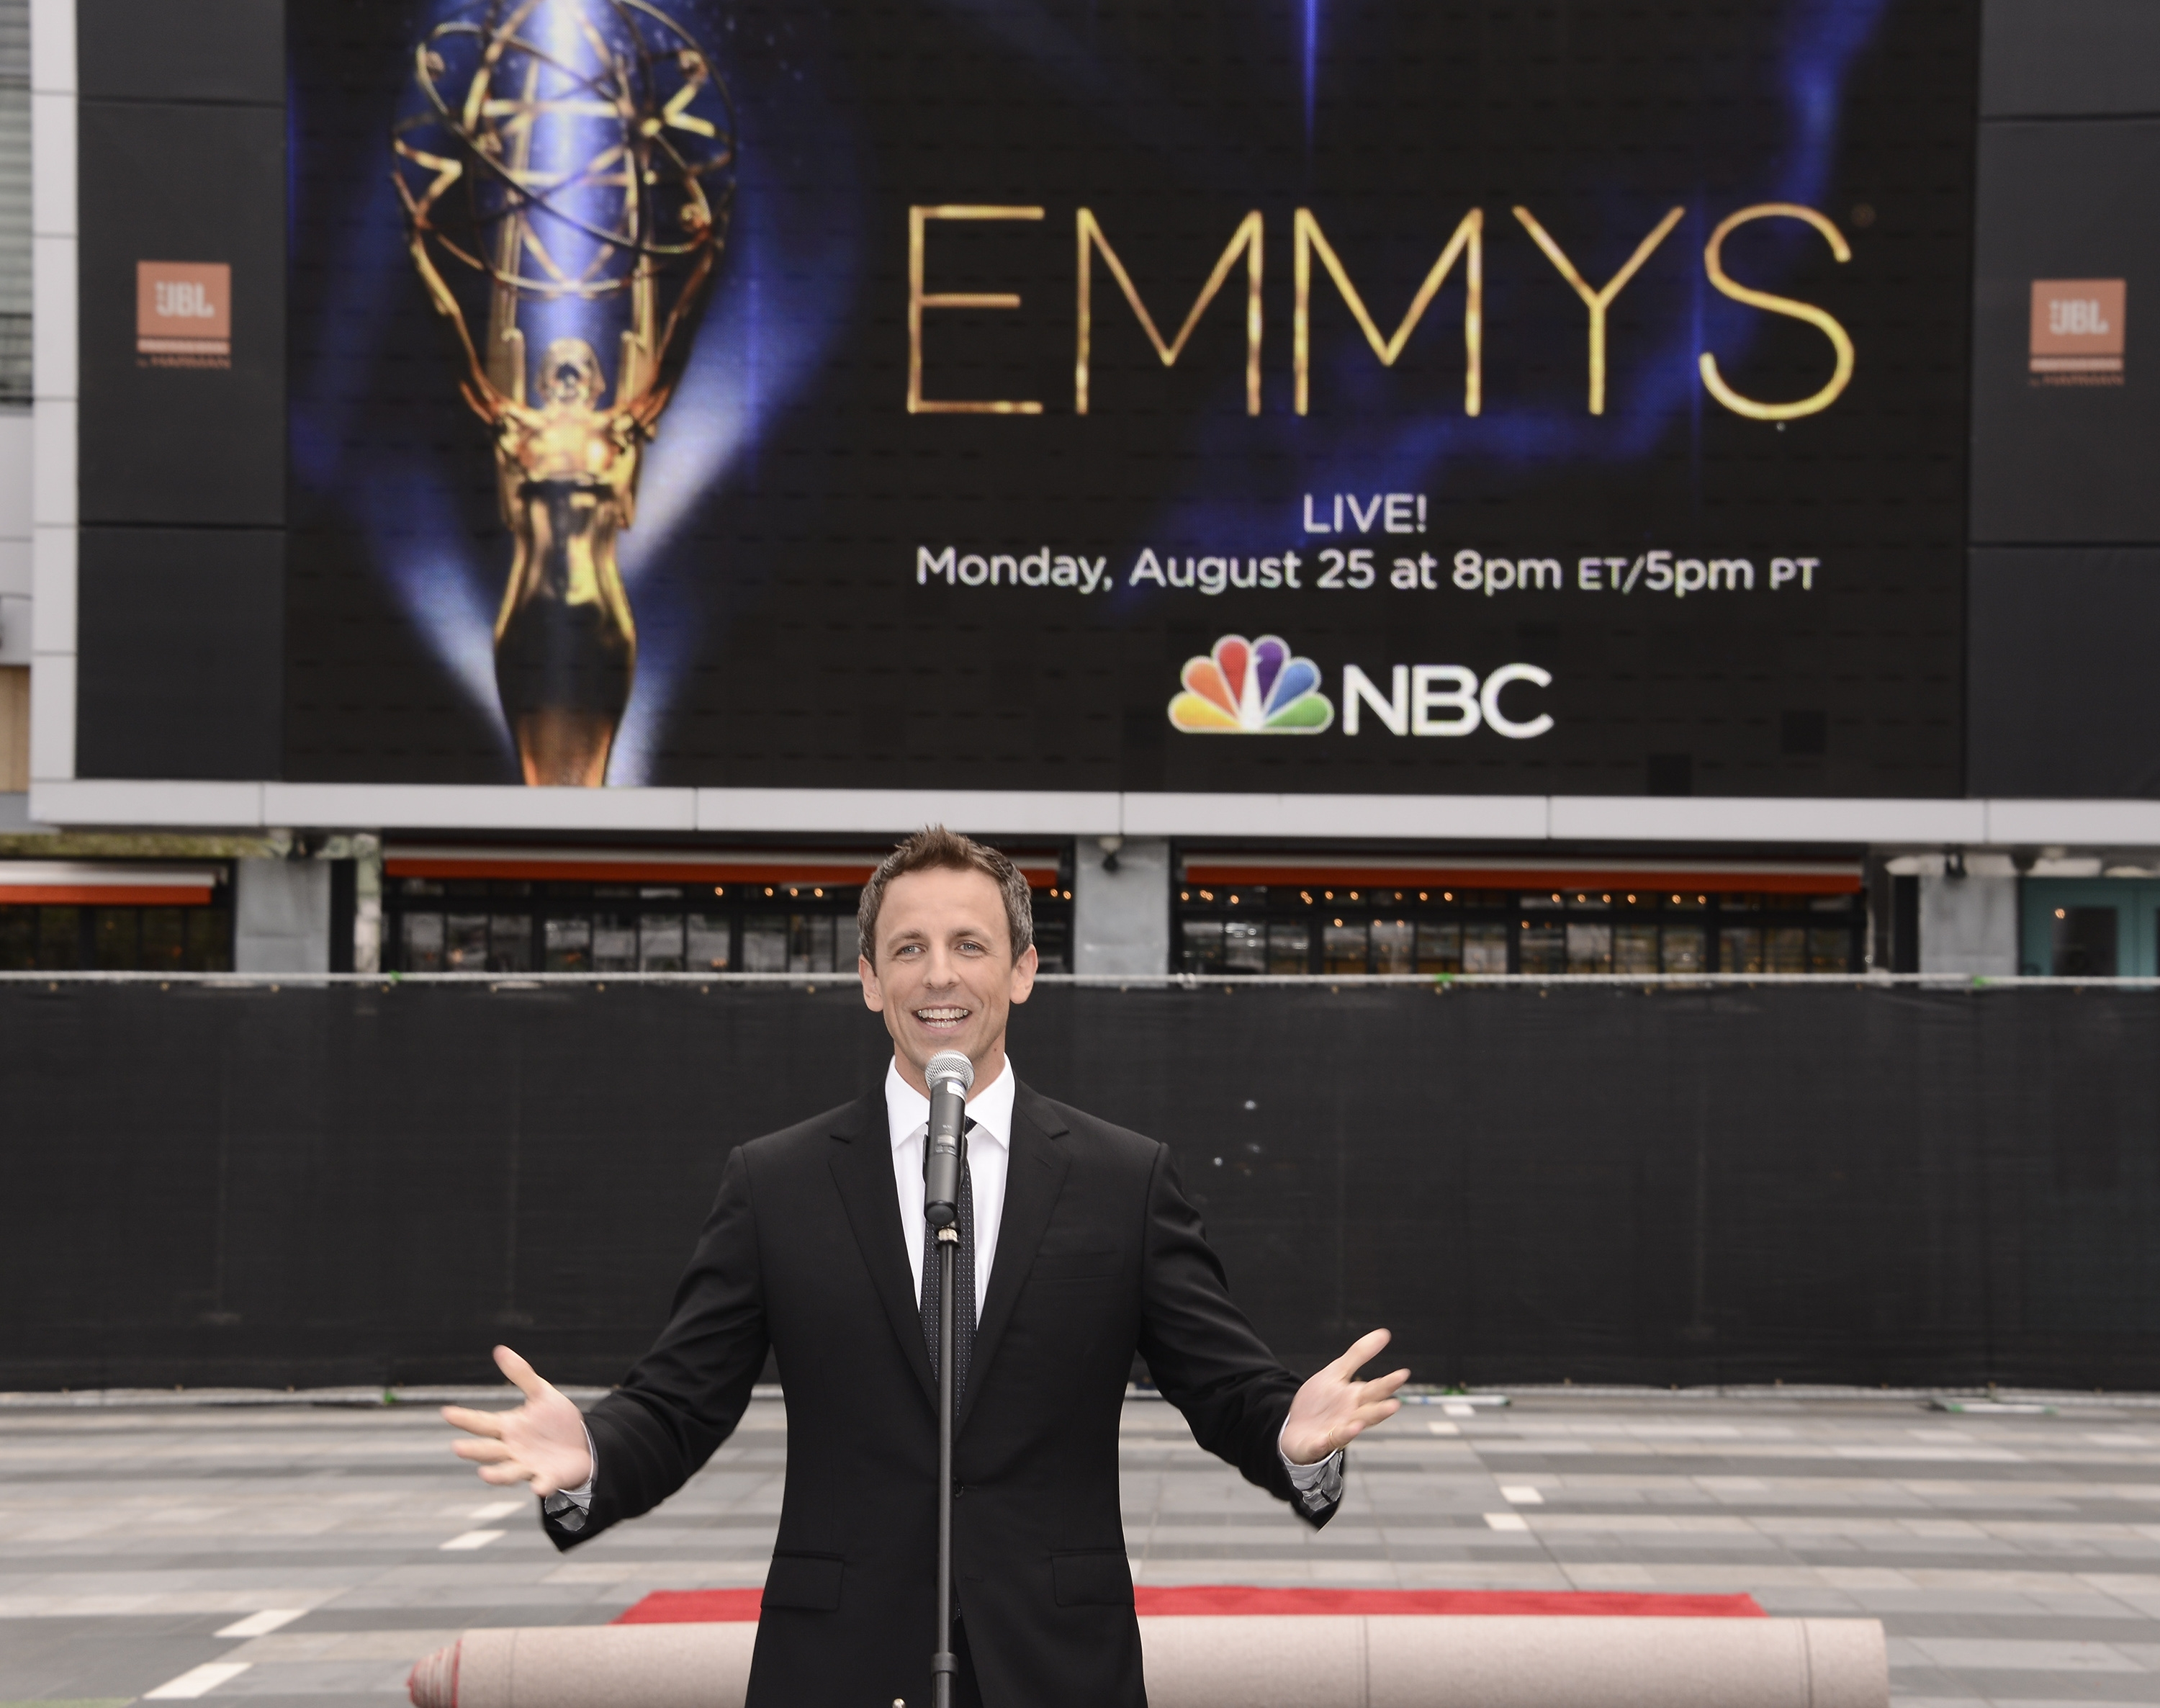 Seth Meyers speaks at the Television Academy's 66th Primetime Emmy Awards Press Preview Day and Red Carpet Rollout  at Nokia Theater L.A. LIVE.